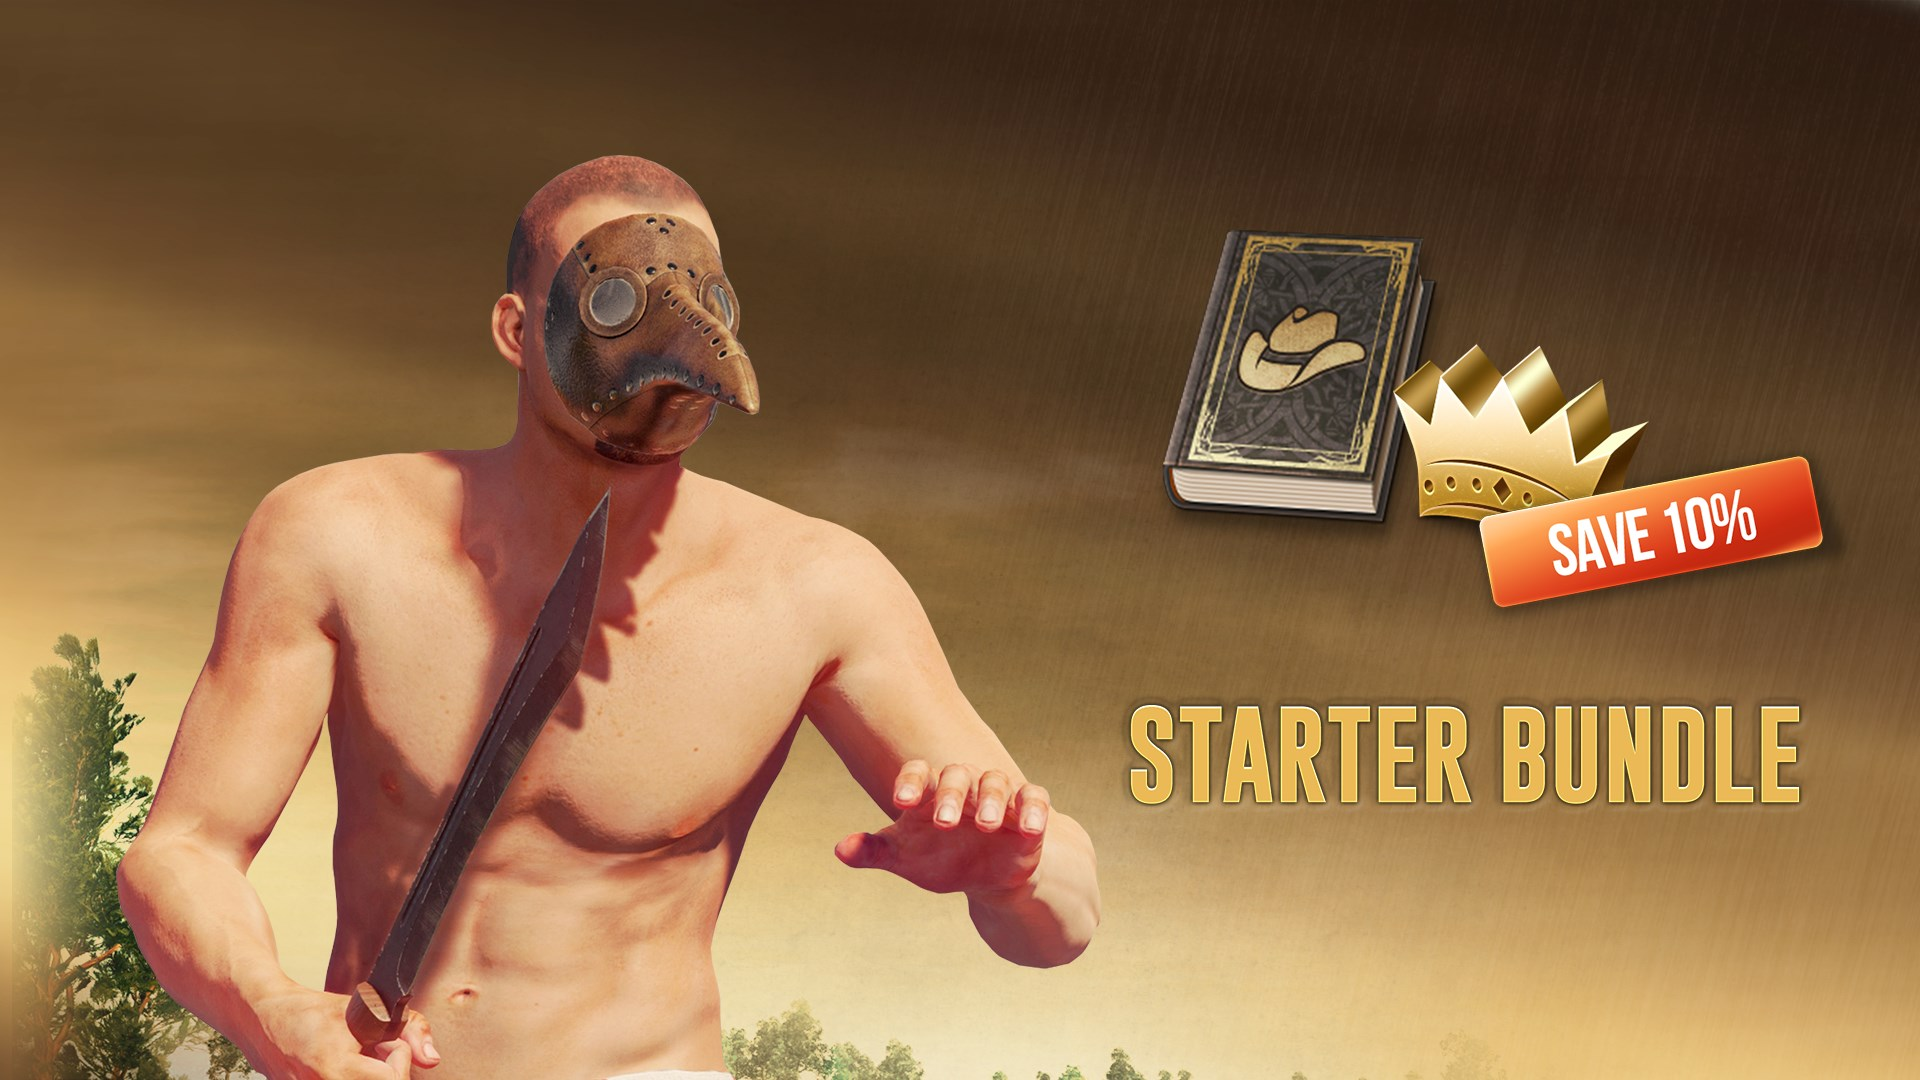 Cuisine Royale - Starter Bundle